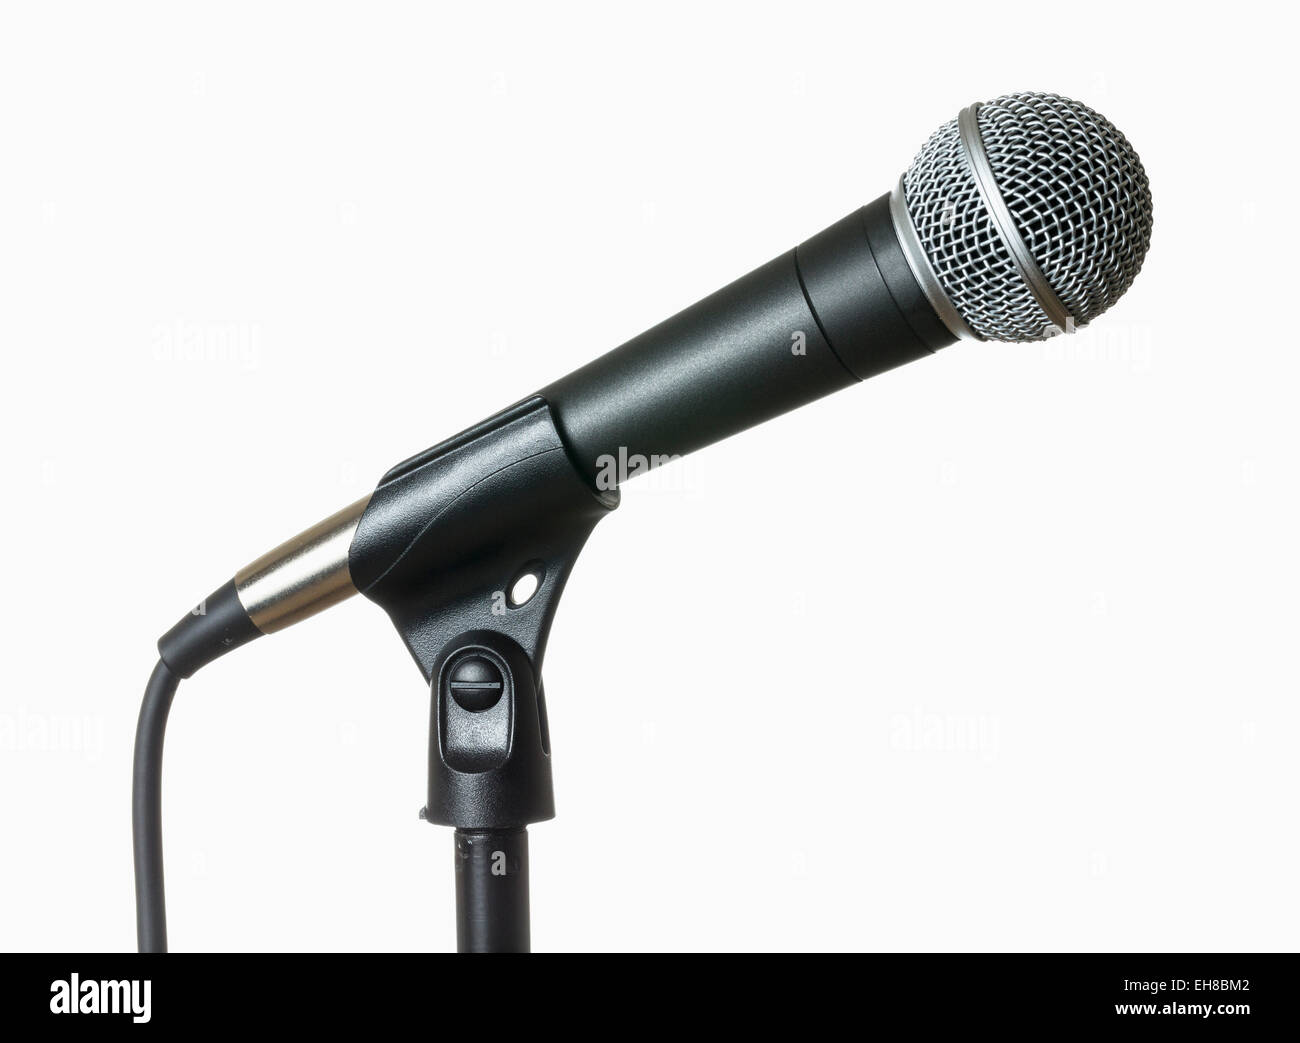 Classic stage microphone in a stand with cable isolated against white - Stock Image